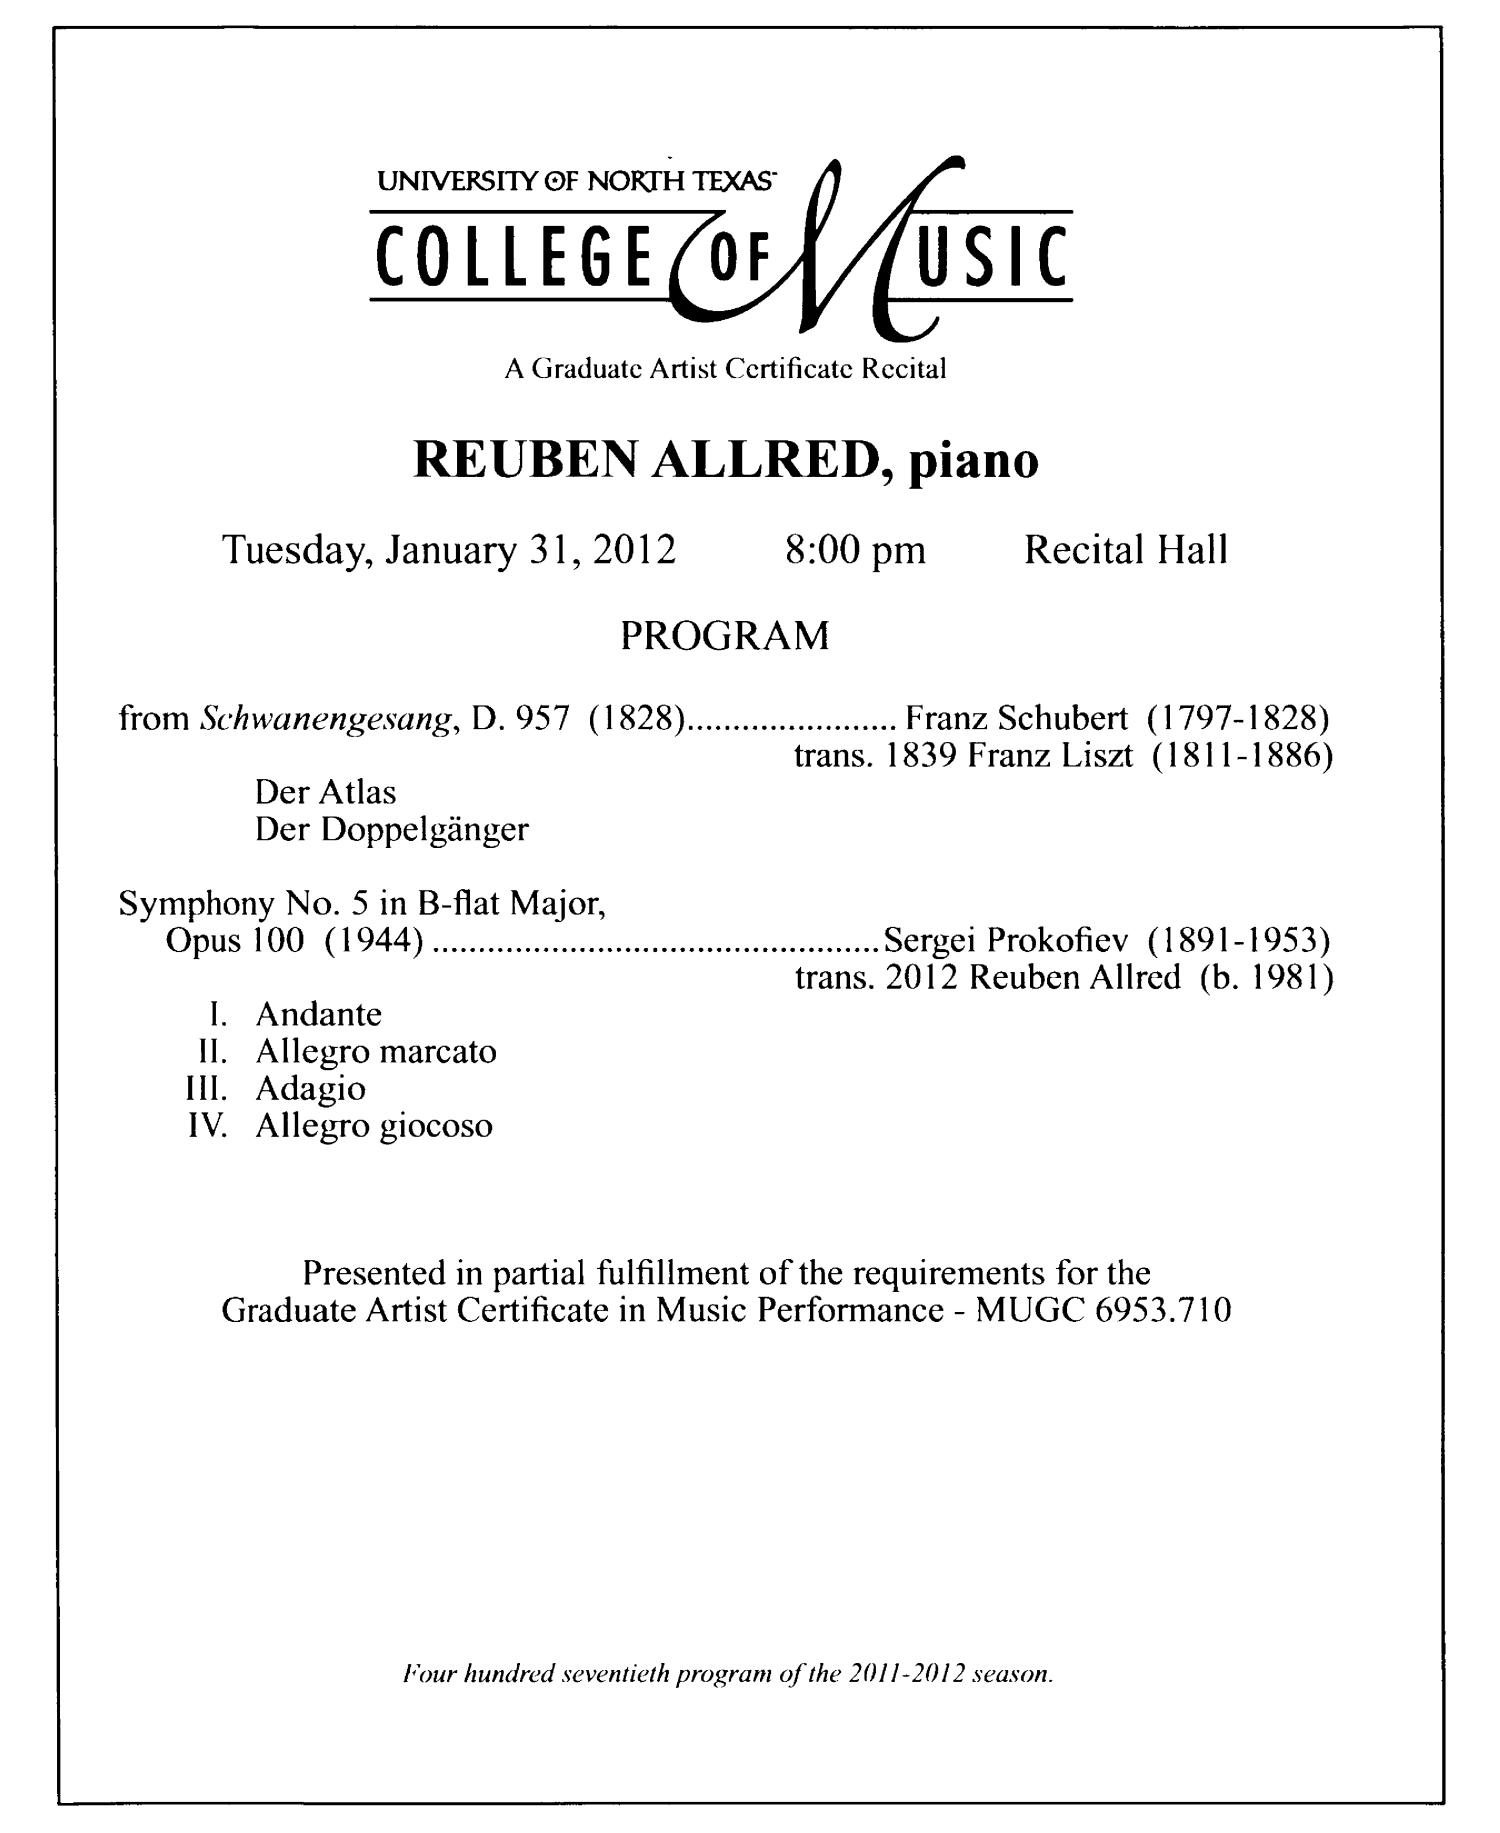 College of Music Program Book 2011-2012: Student Performances, Volume 2                                                                                                      30